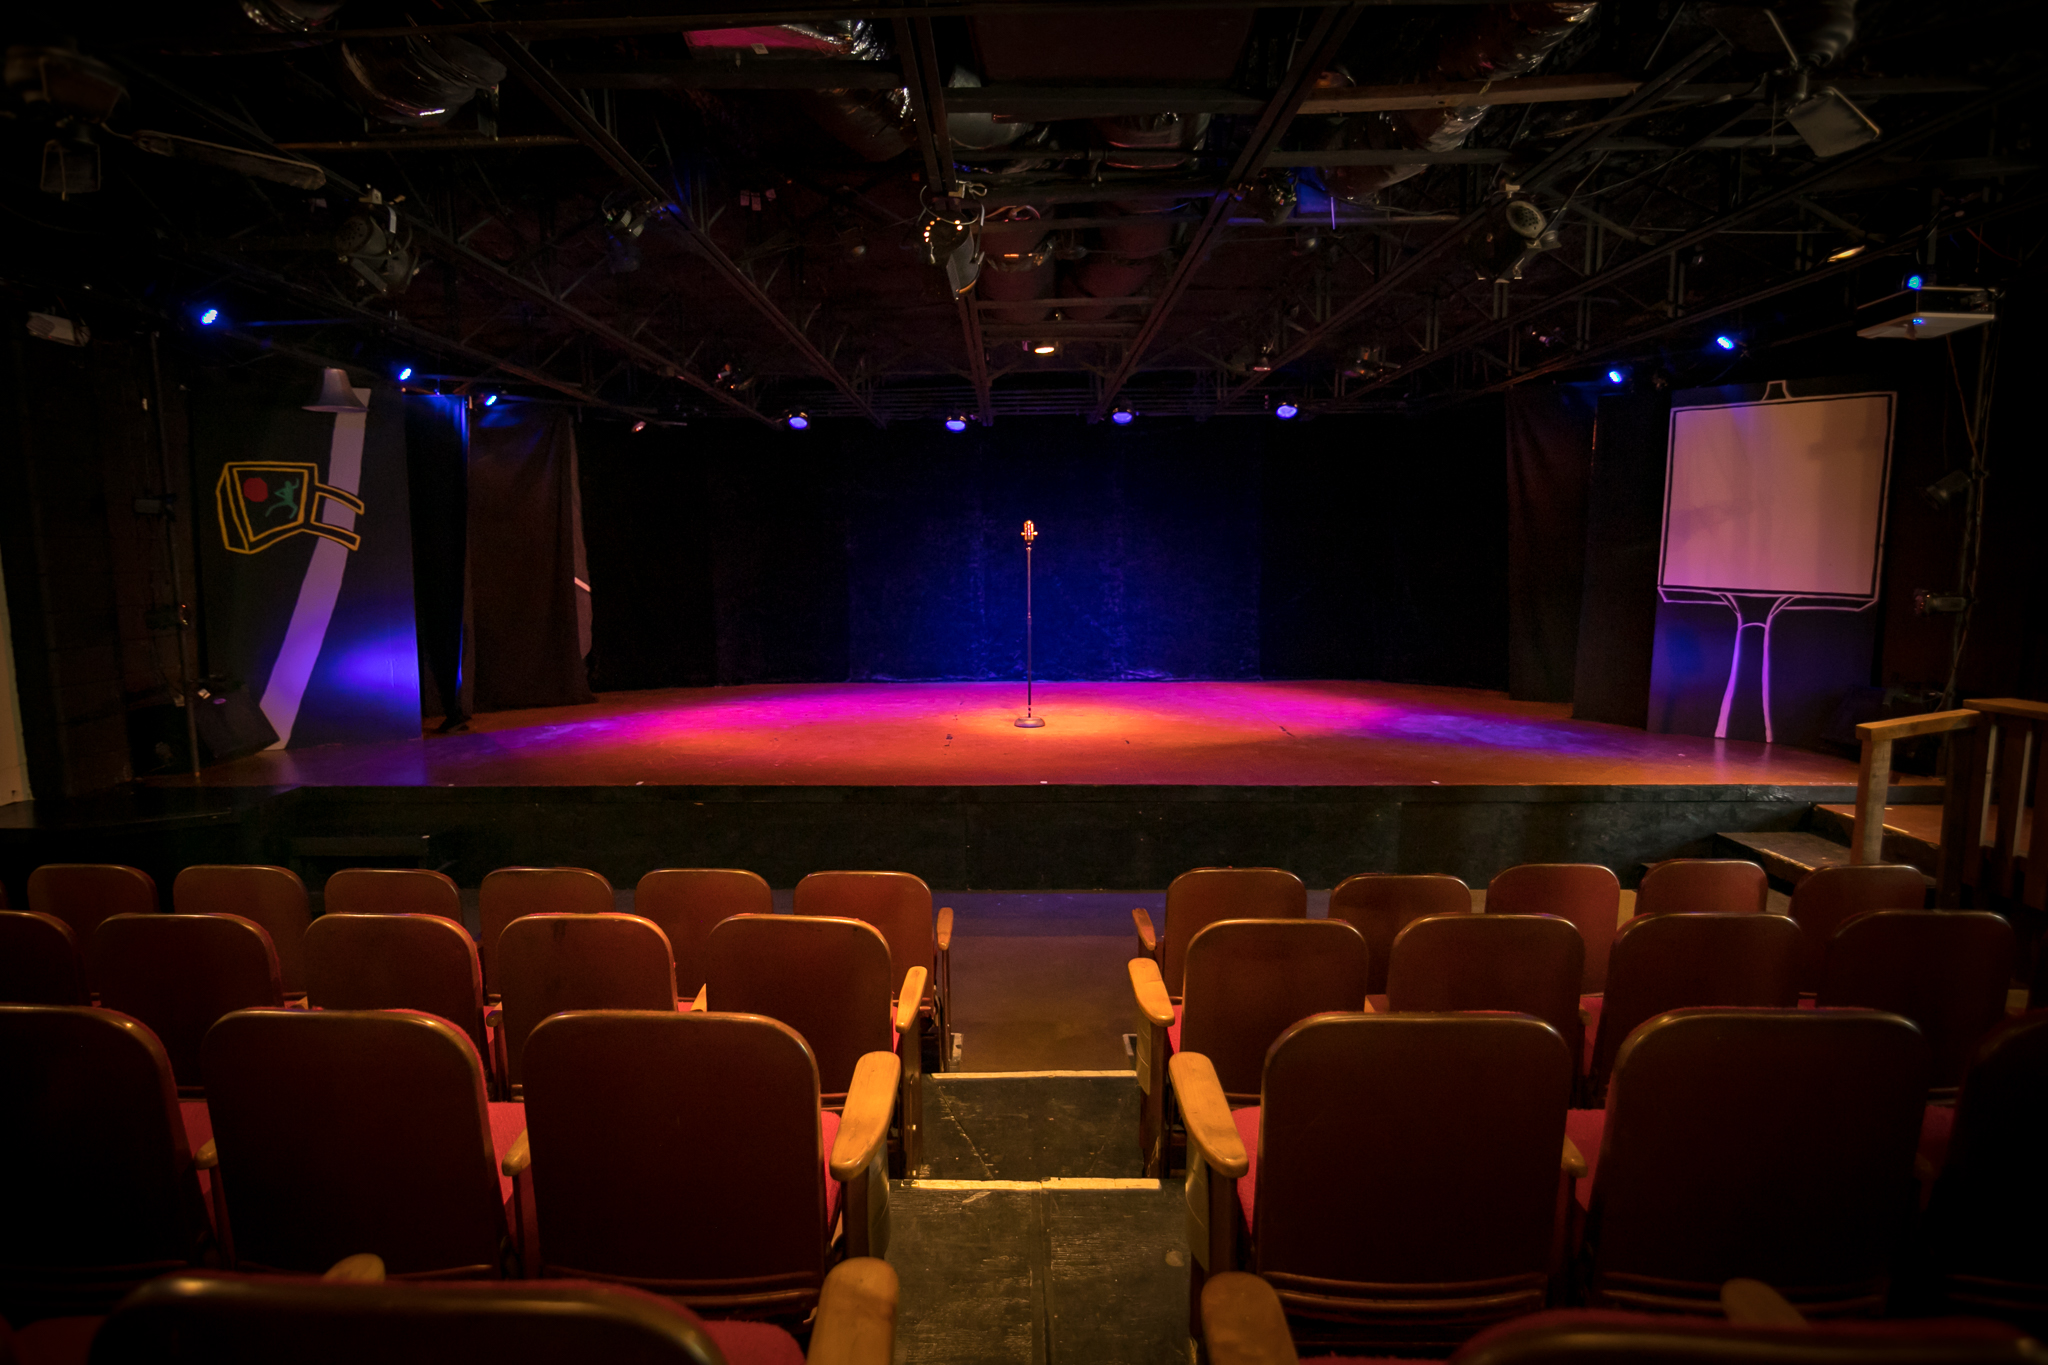 Theater Rental - Santa Cruz is a creative space critically designed for Artists, the Arts, and Arts Patrons. The theater's overarching goal is to structure the most intimate theatrical space for creating unforgettable performance events!